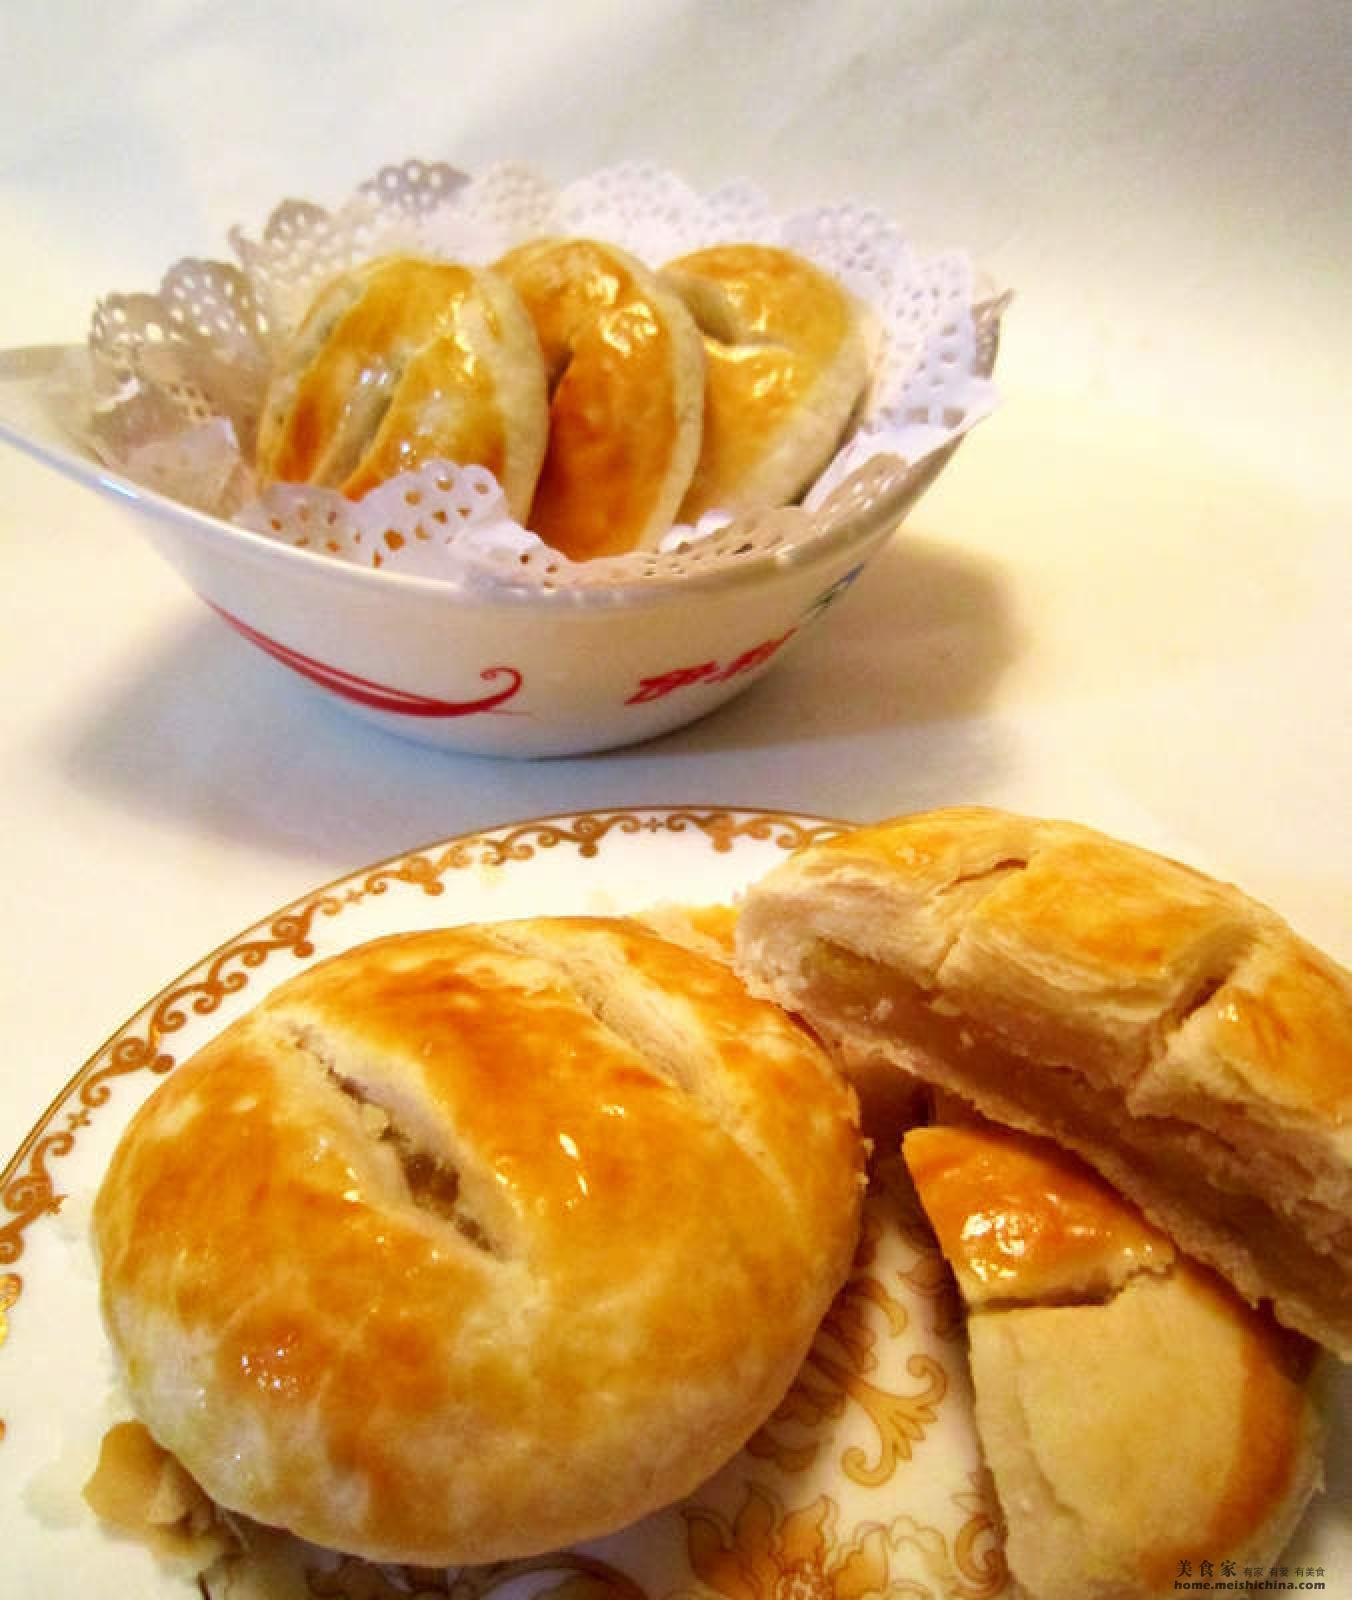 Pin By Allison Elmer On This Is Why I Work Out Delish Cakes Asian Desserts Puff And Pie